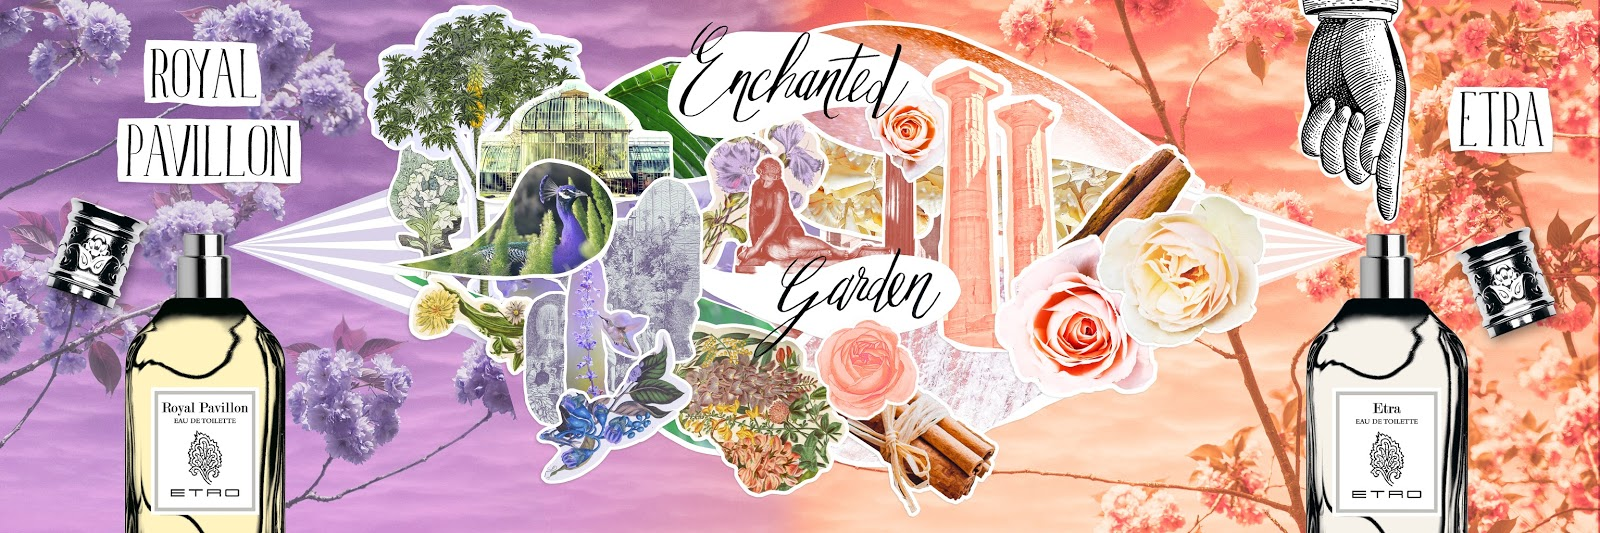 Etro Metamorfosi Enchanted Garden